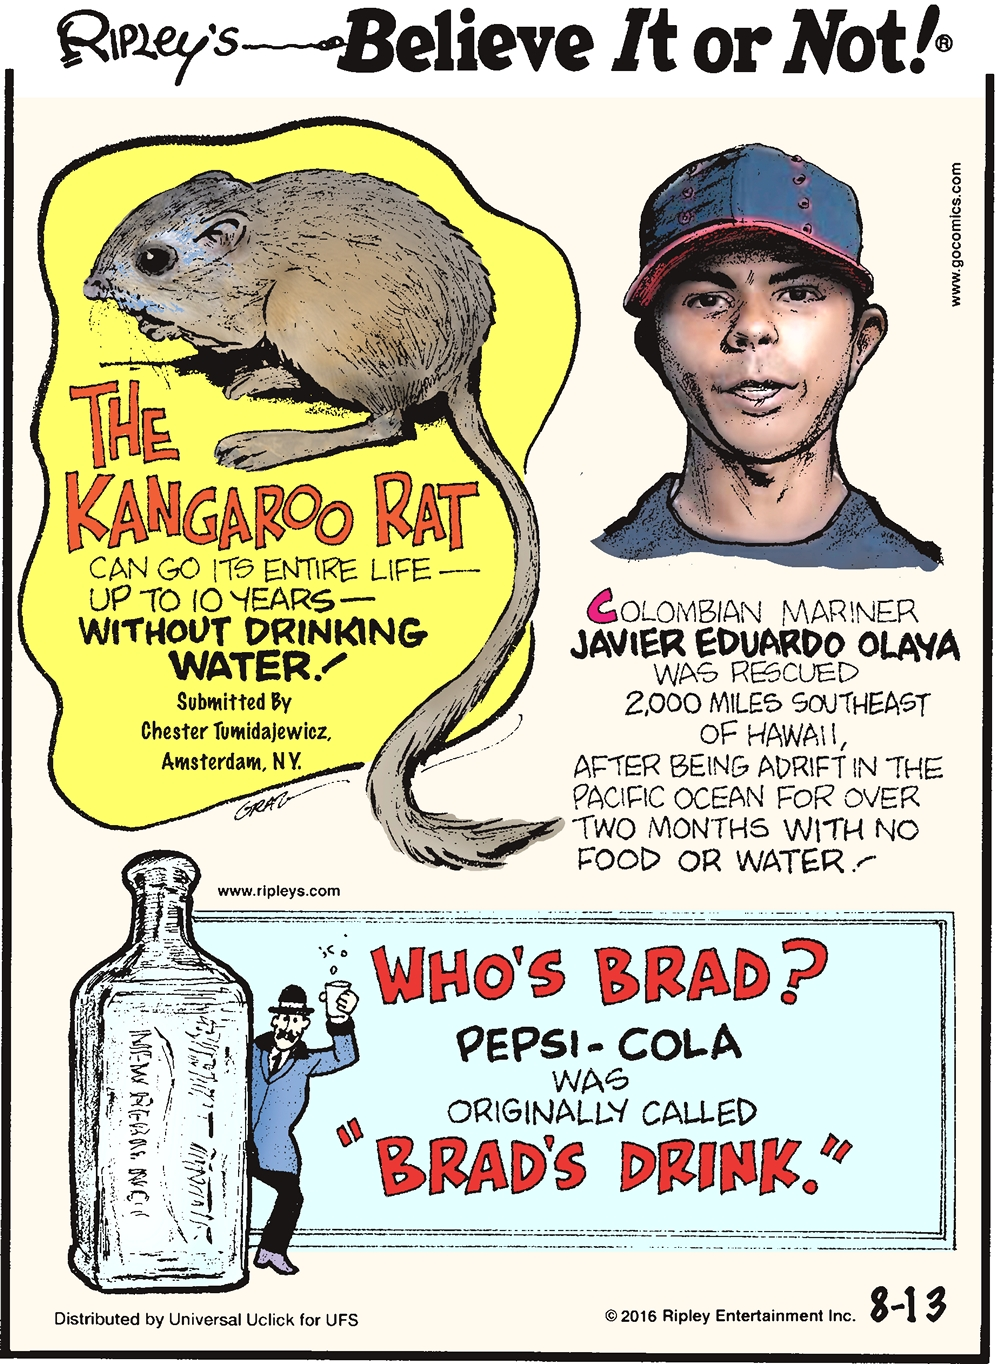 "The kangaroo rat can go its entire life—up to 10 years—without drinking water! Submitted by Chester Tumidajewicz, Amsterdam, NY -------------------- Colombian mariner Javier Eduardo Olaya was rescued 2,000 miles southeast of Hawaii, after being adrift in the Pacific Ocean for over two months with no food or water! -------------------- Pepsi-Cola was originally called ""Brad's Drink."""